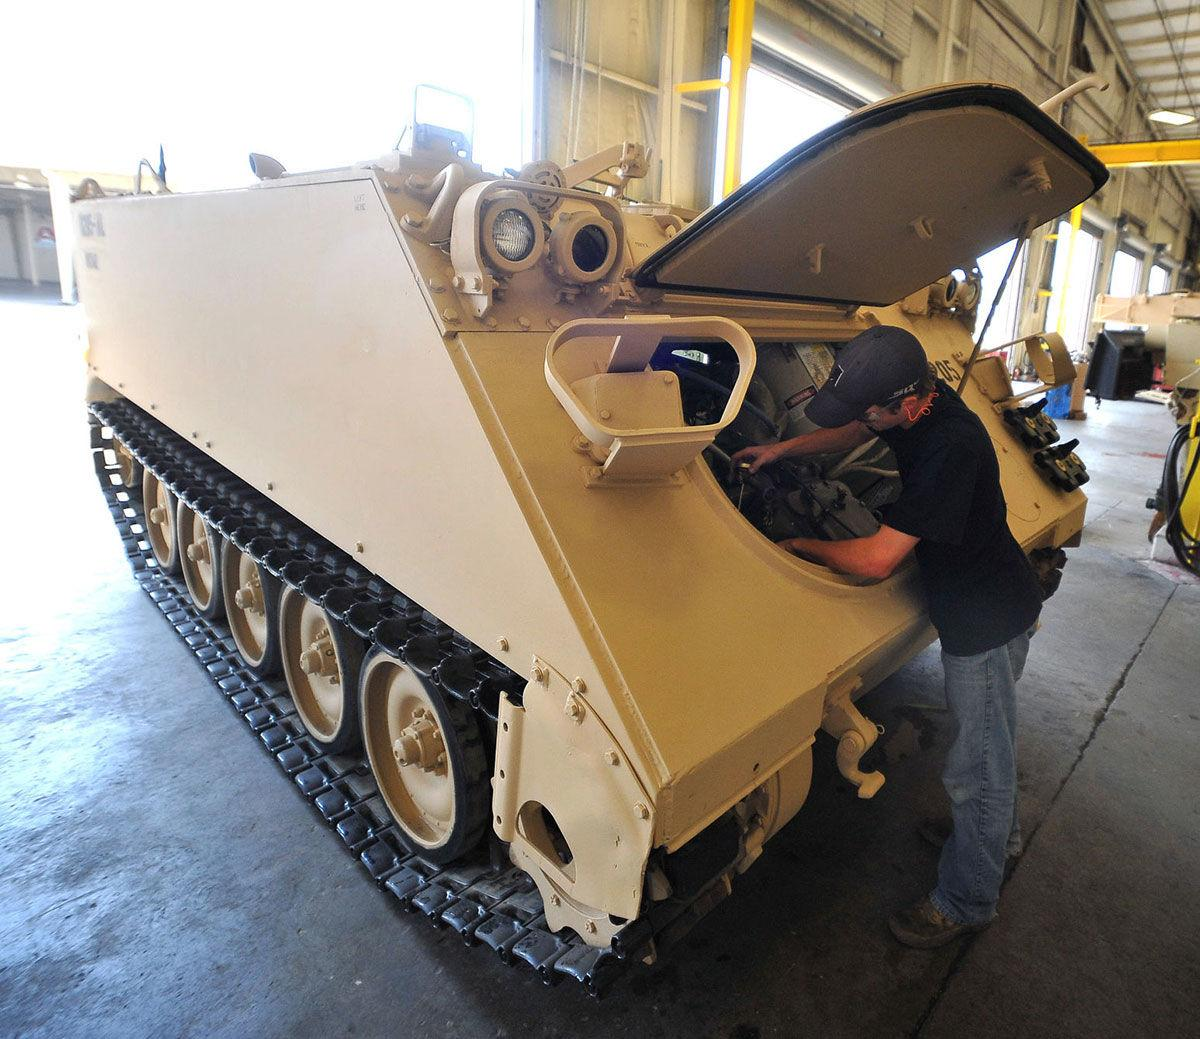 Army decision on armored vehicle could affect Anniston for decades